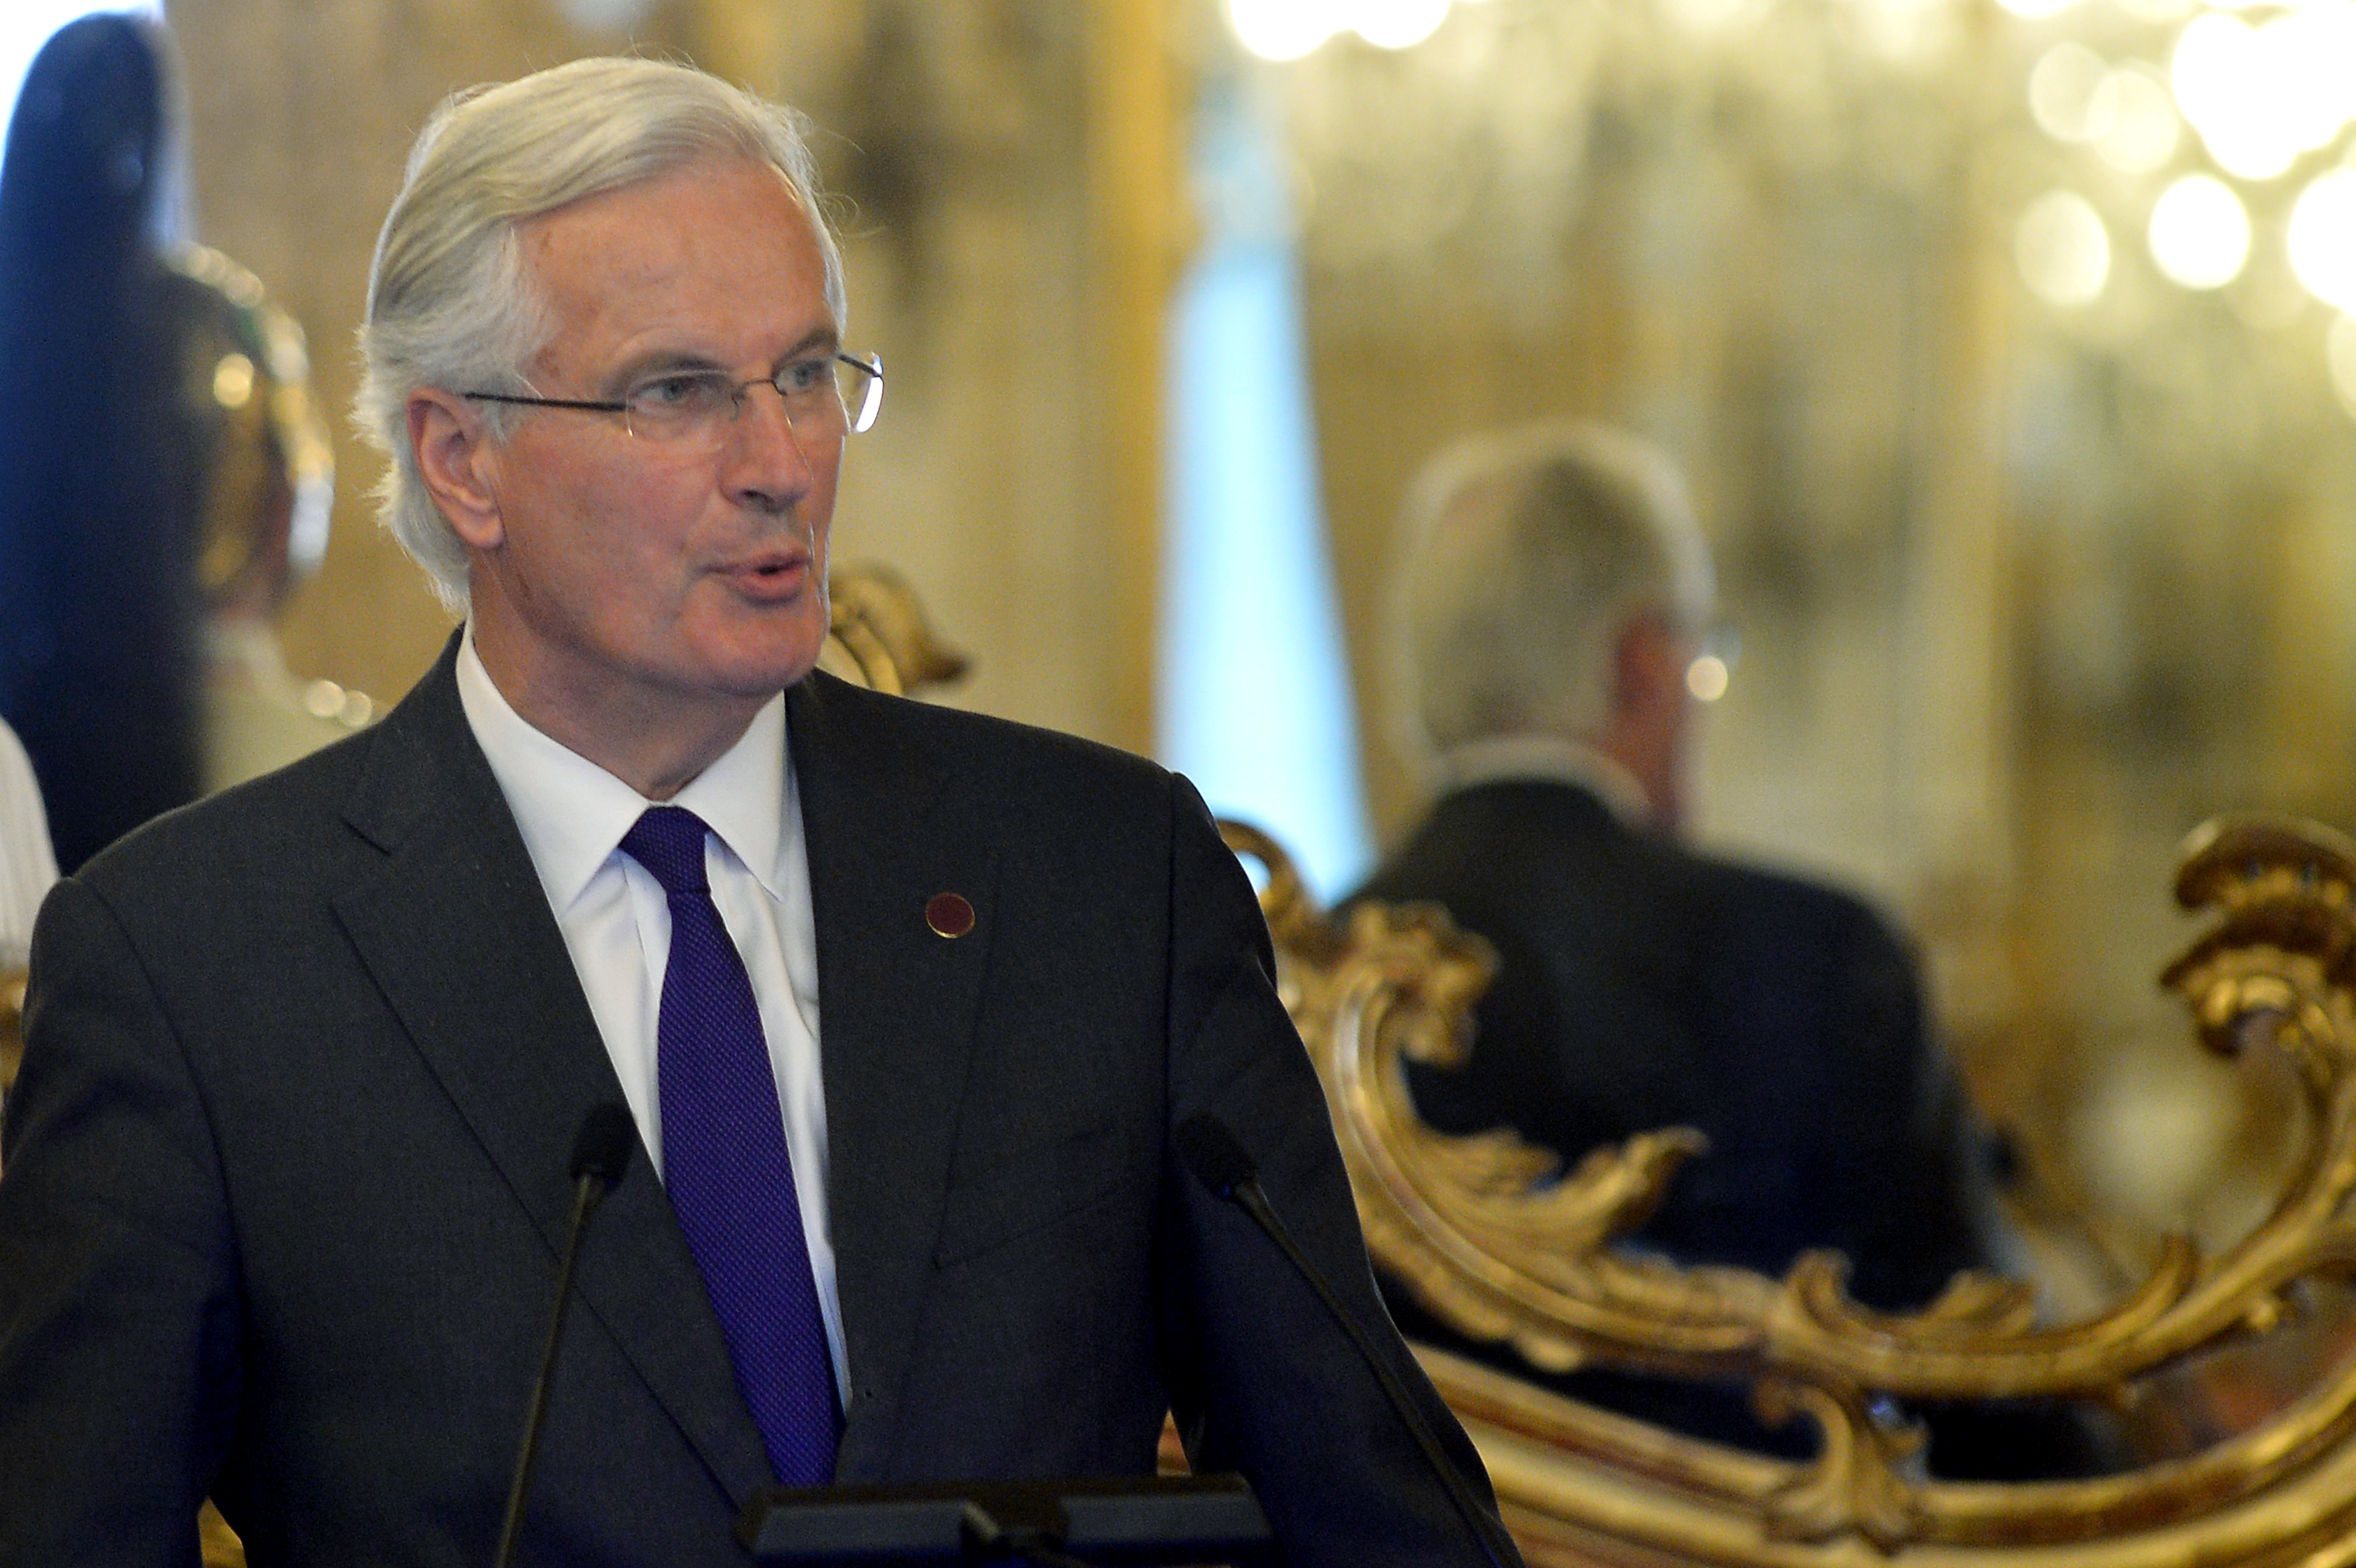 Speech by Michel Barnier, Vice-President of the EC in charge of Internal Market and Services and Industry and Entrepreneurship (proterm)